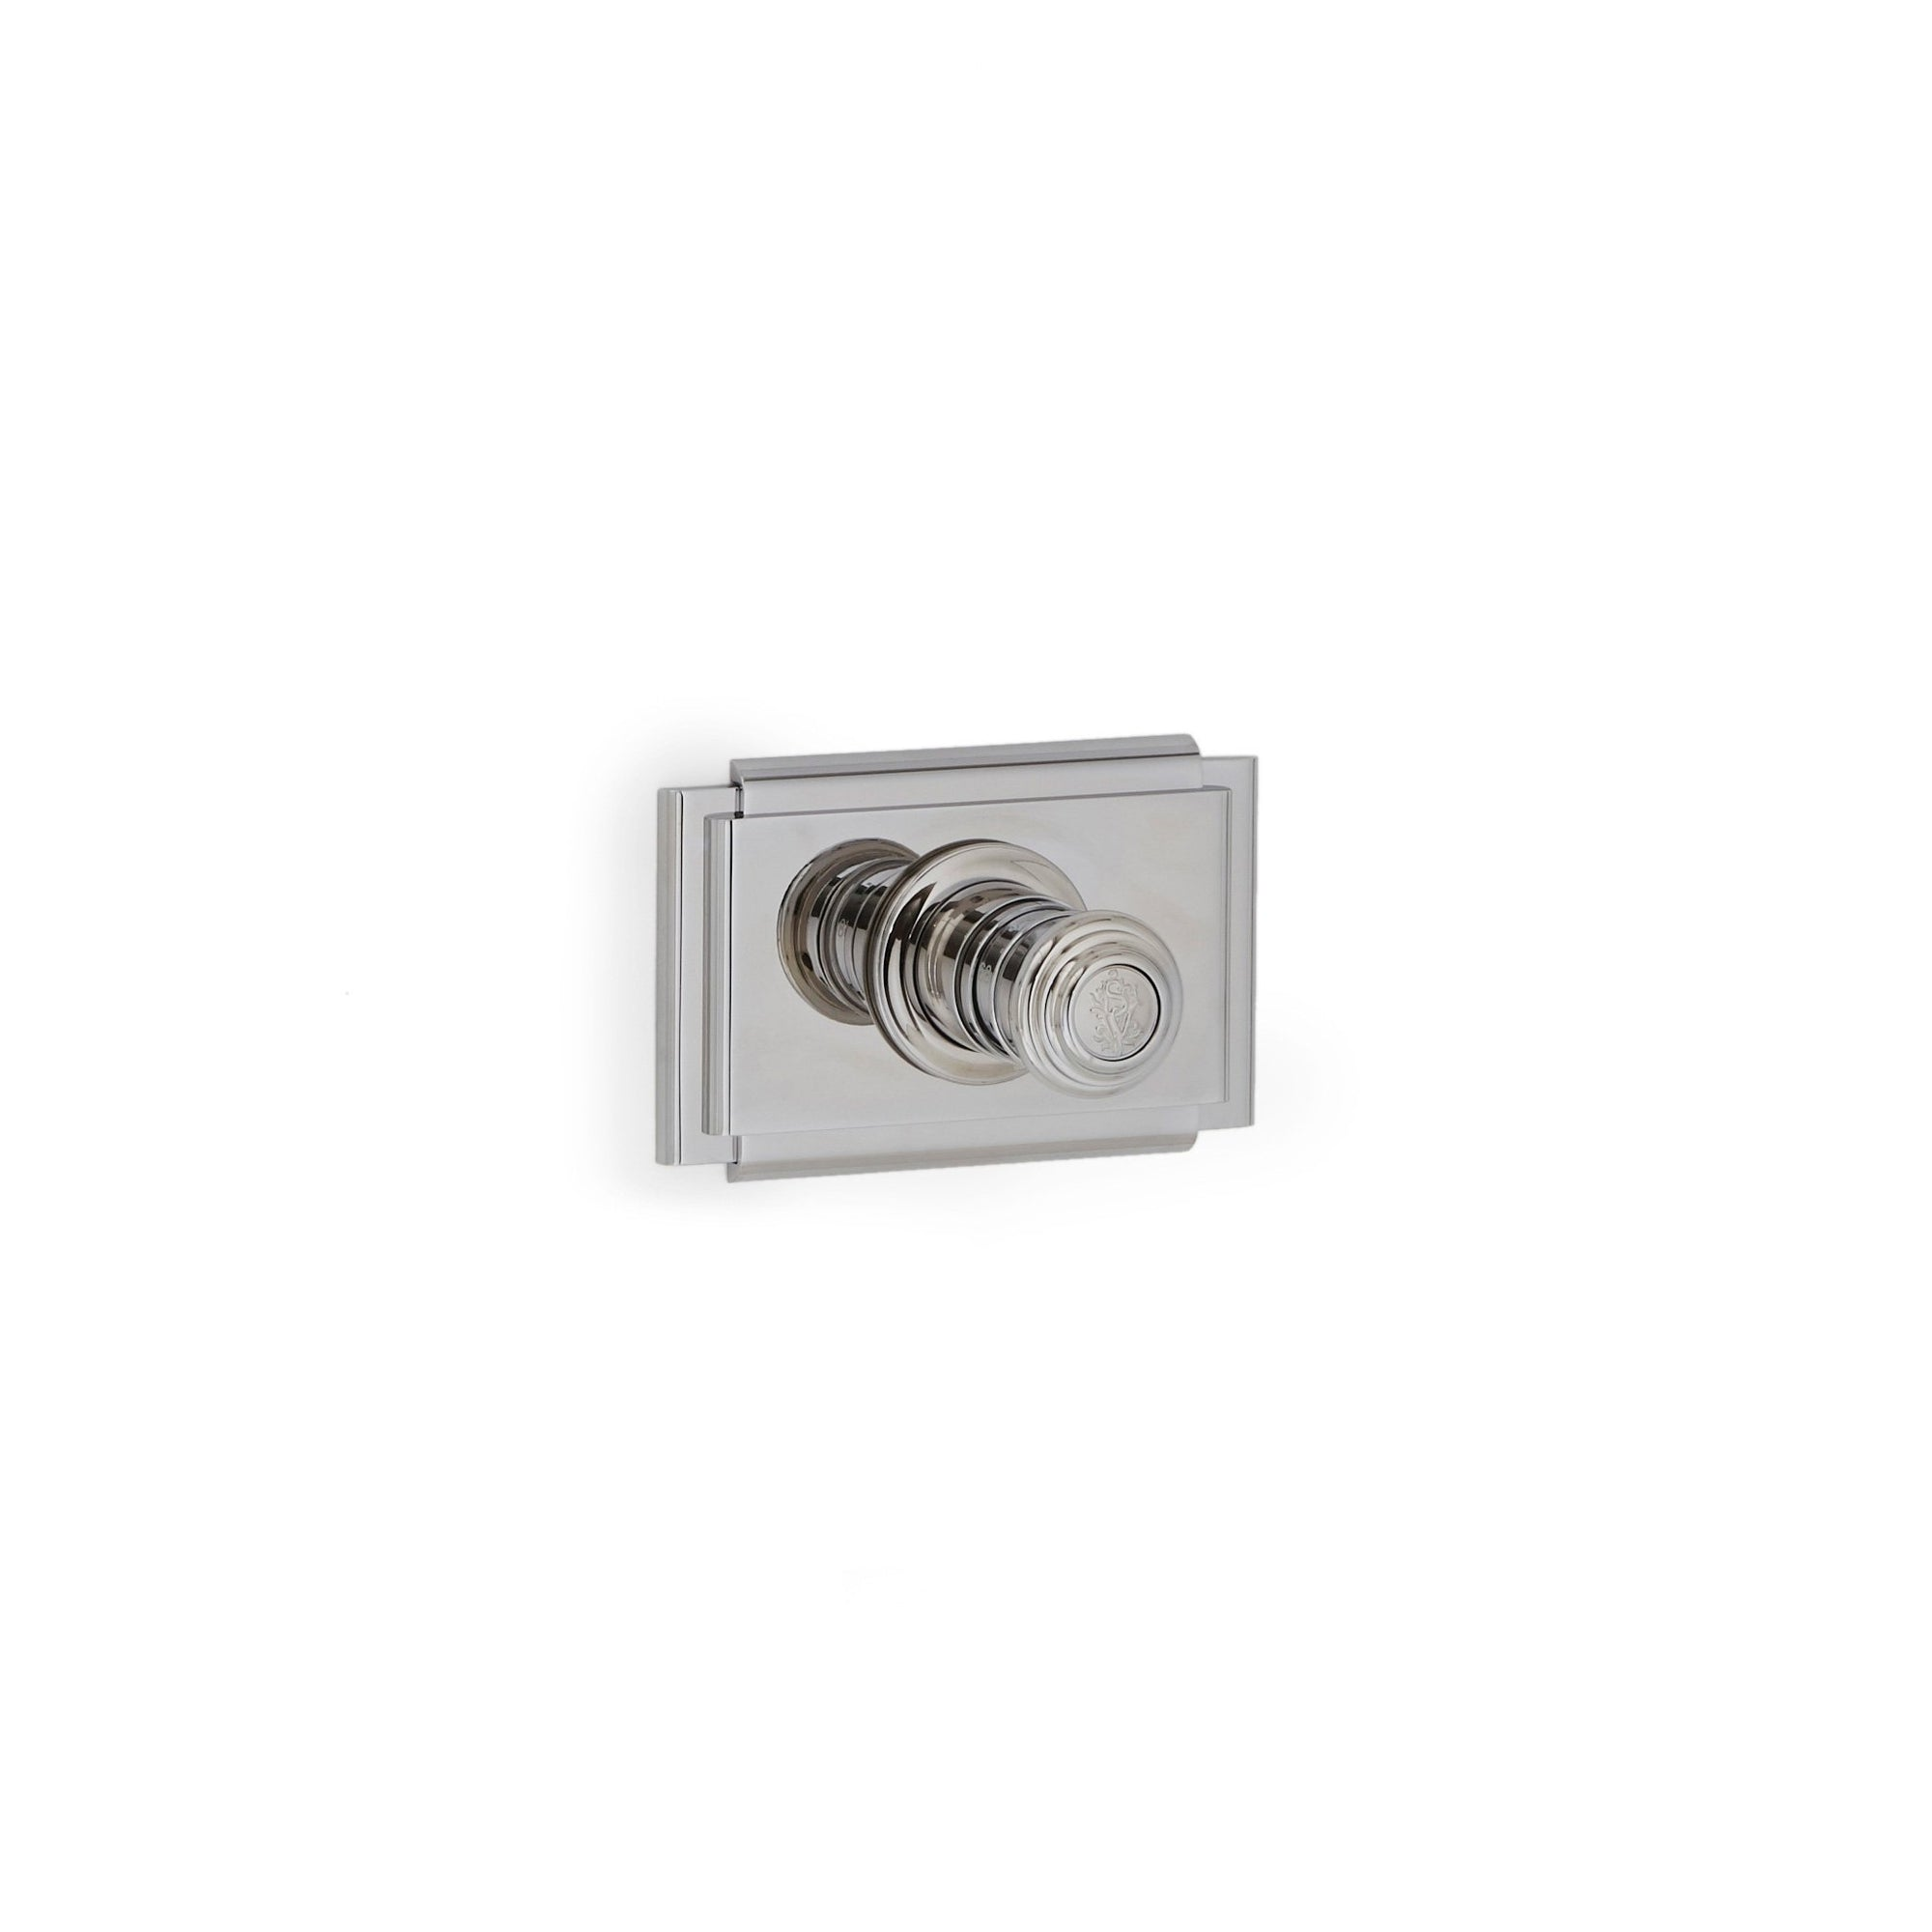 TMO10PL-LOGO-CP Sherle Wagner International Nouveau High Flow Thermostatic Trim in Polished Chrome metal finish